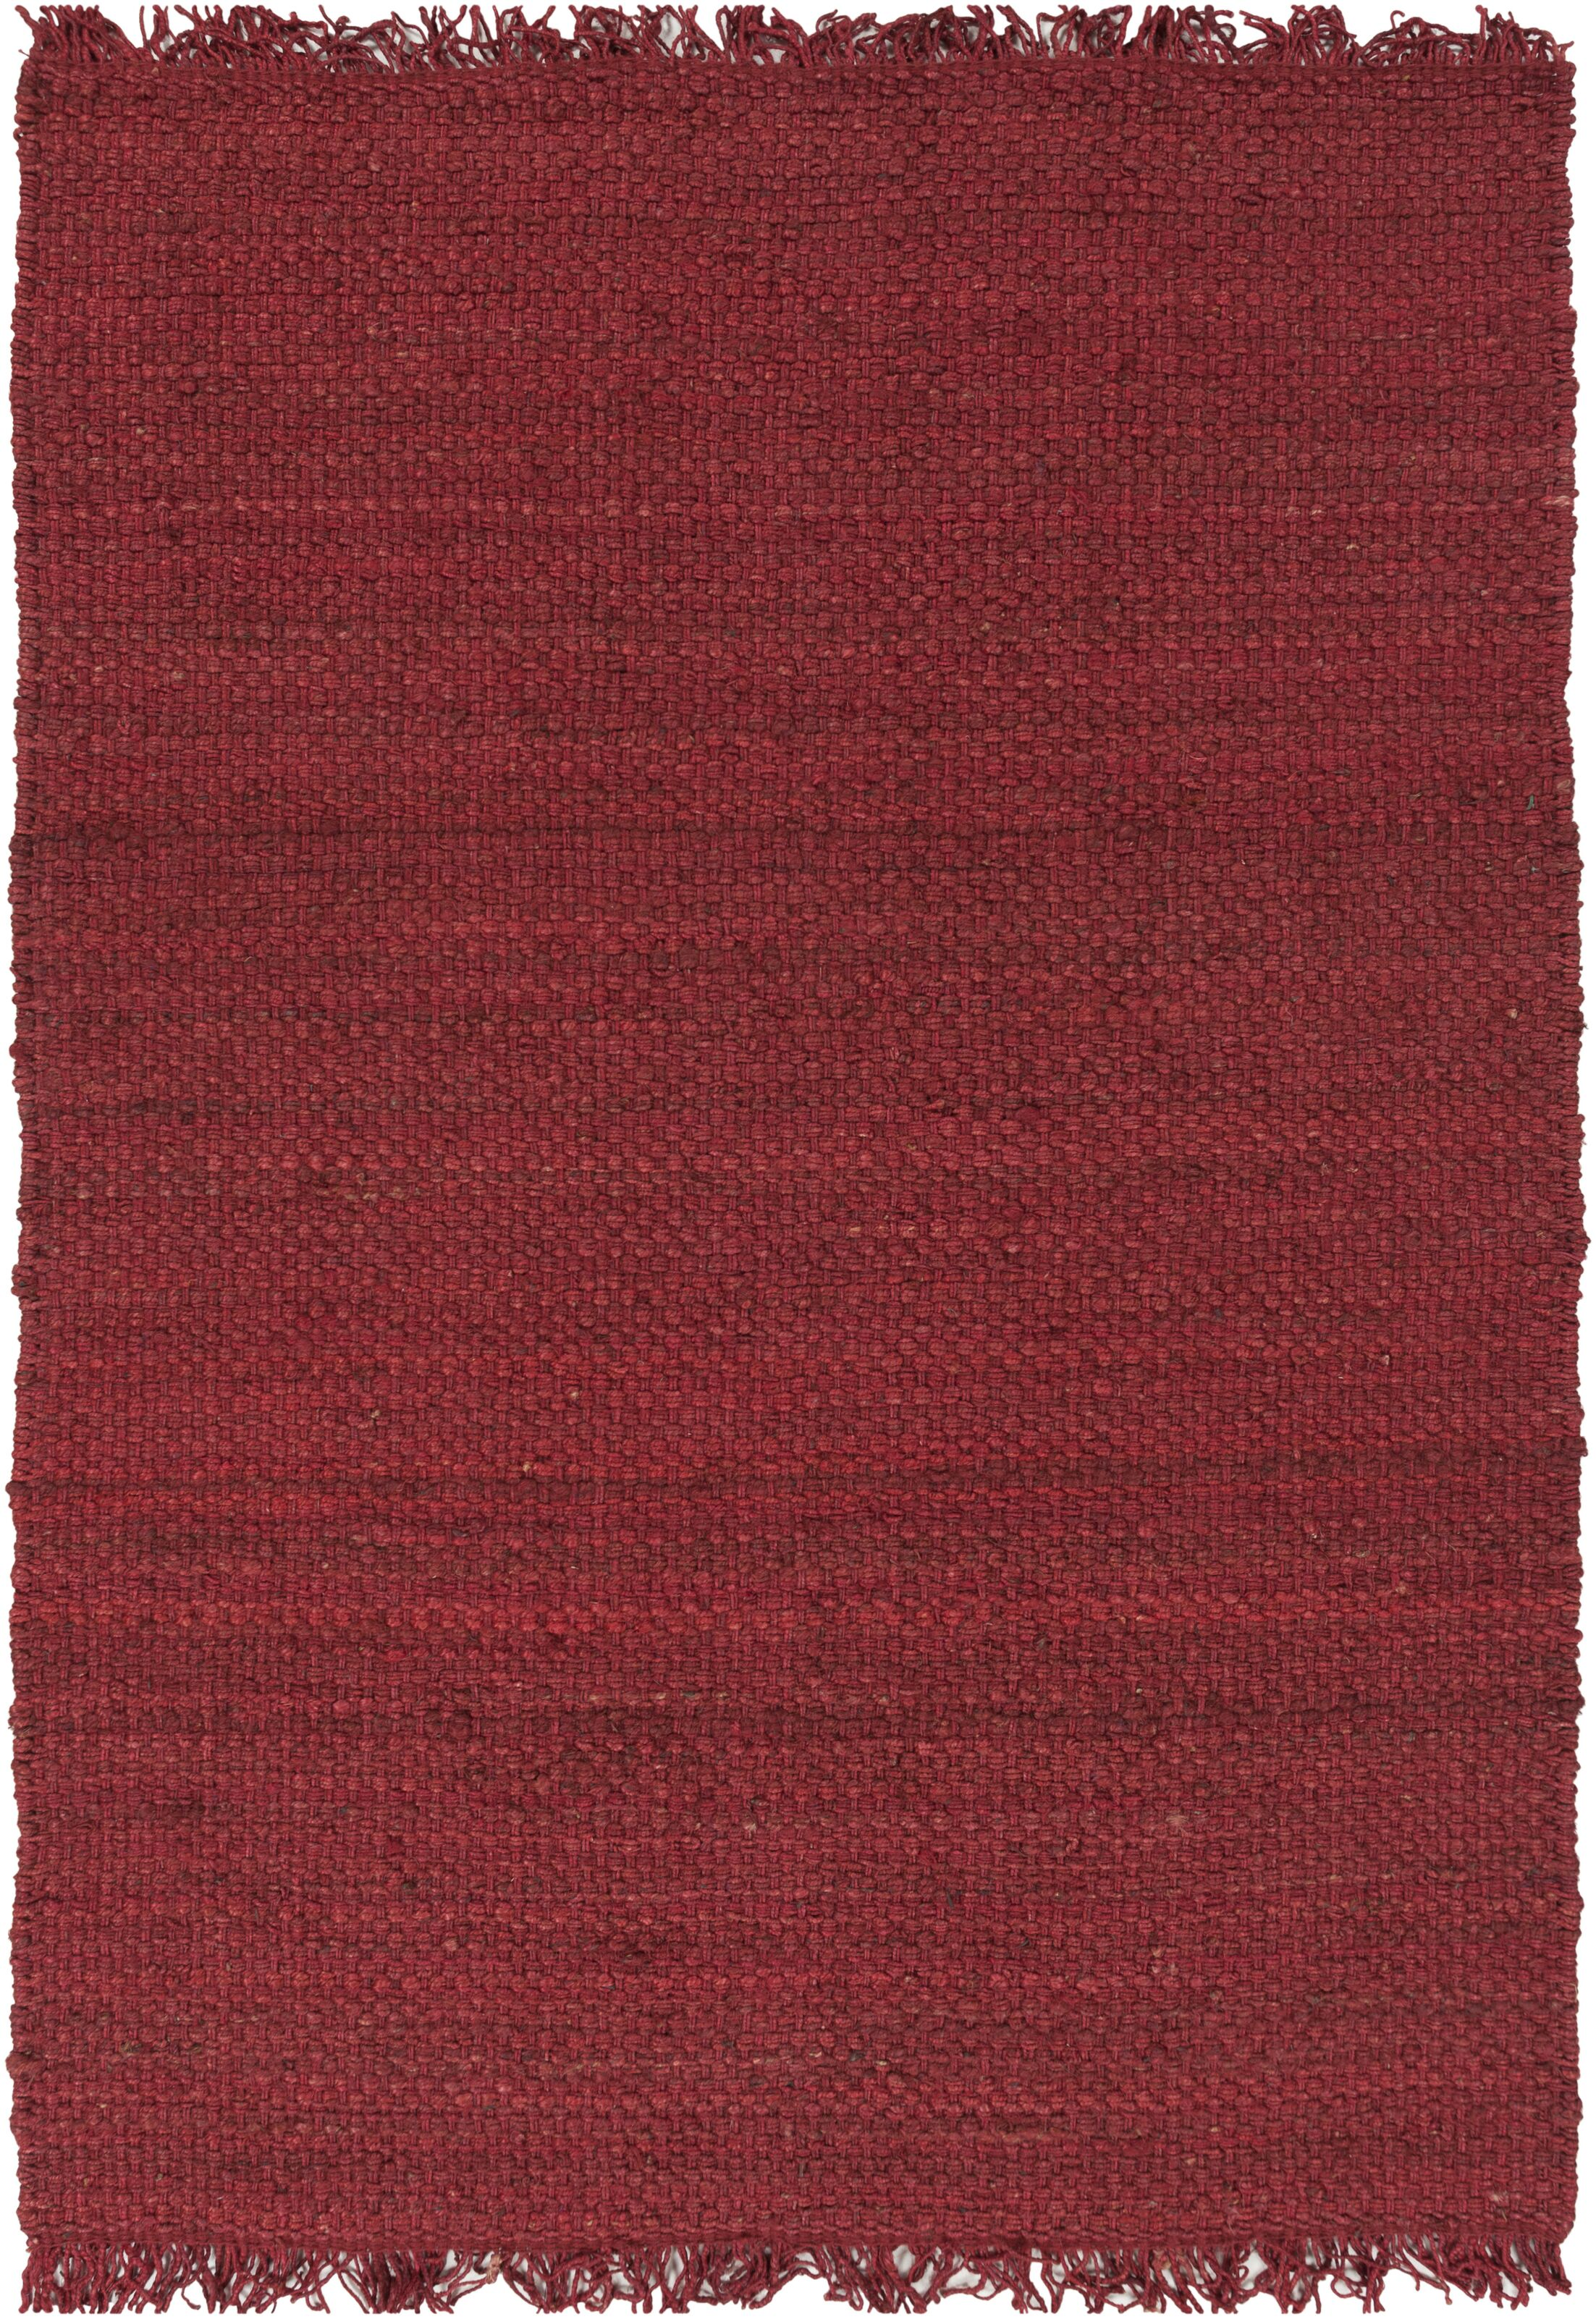 Pineda Hand Woven Red Area Rug Rug Size: Rectangle 8' x 10'